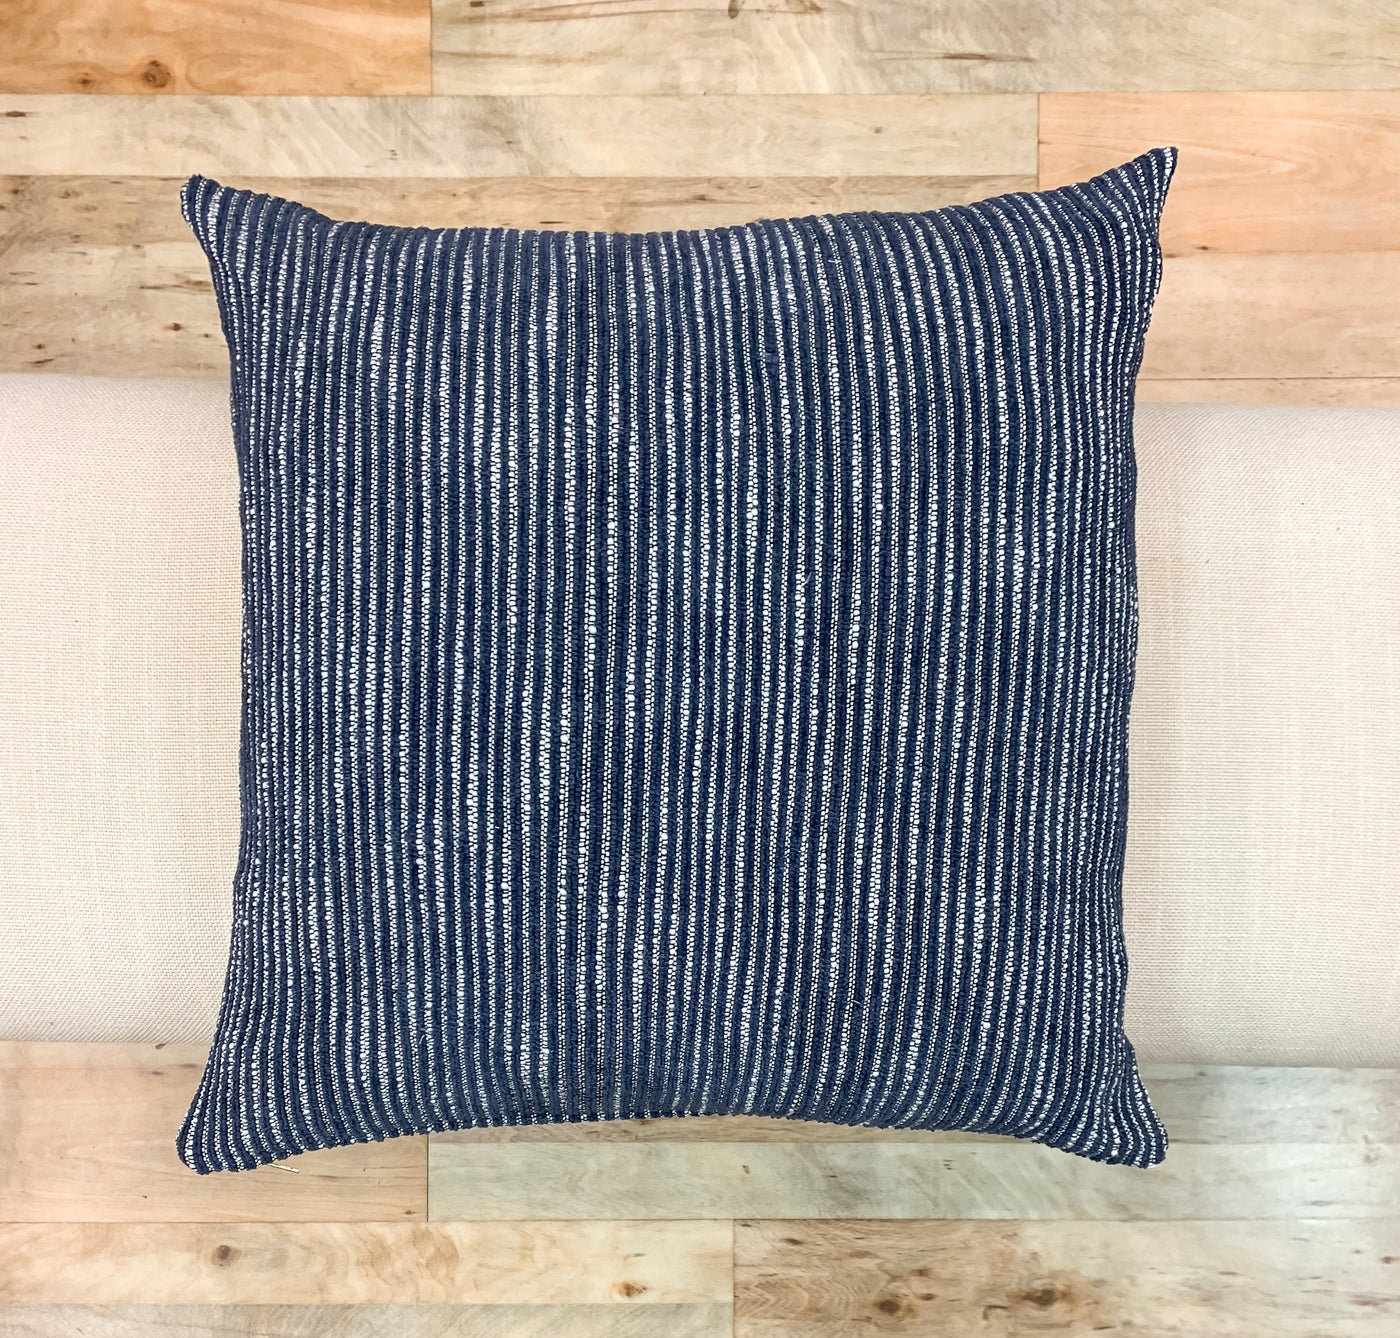 Warm striped pillows covers - ANDES - Studio Pillows